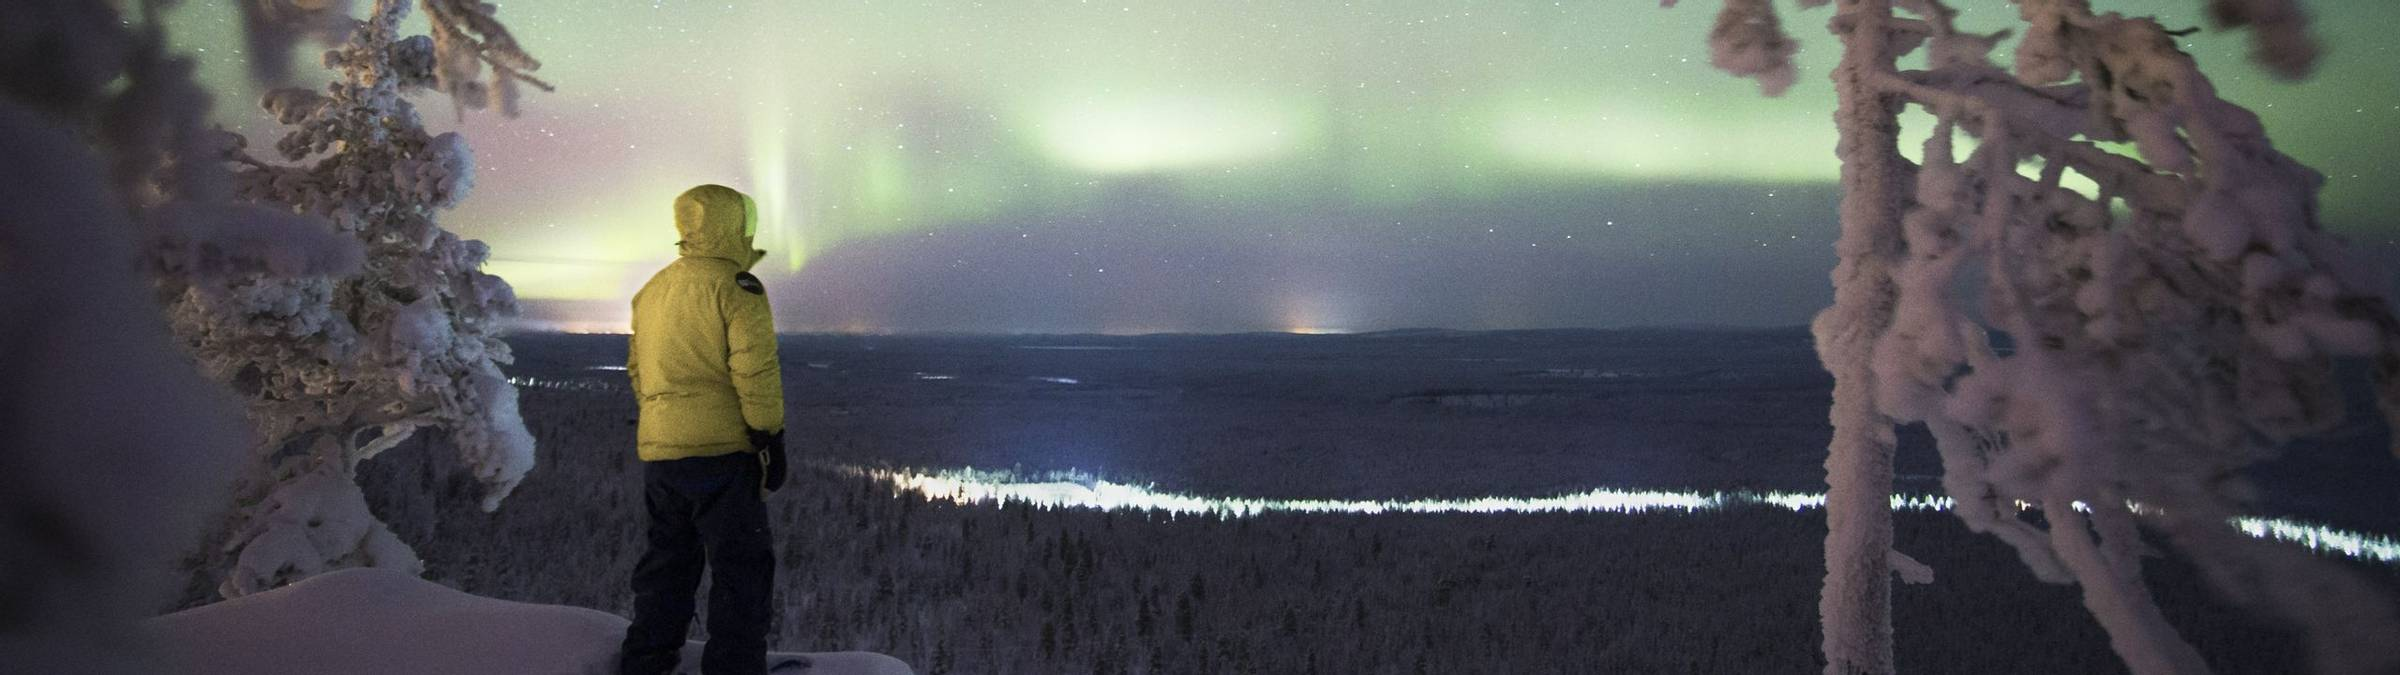 Luosto Northern Lights Dec 2016 Credit Miika Hämäläinen.jpg